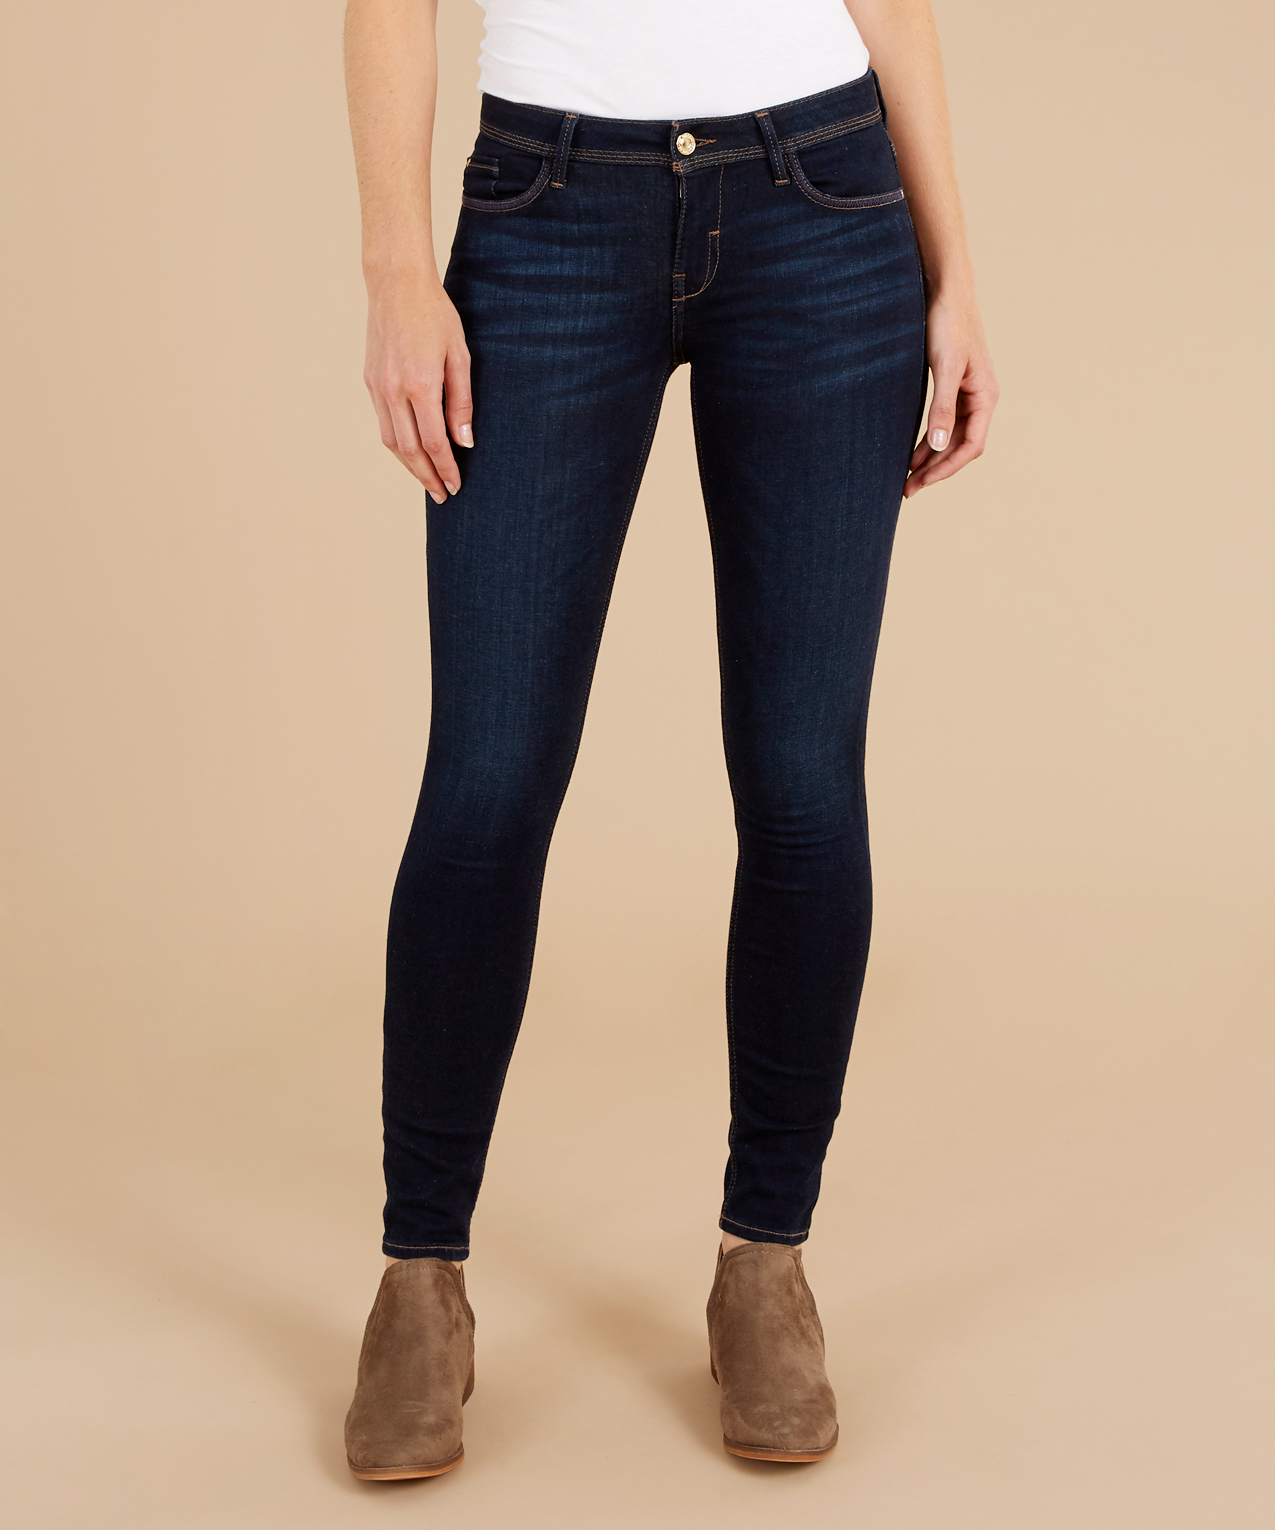 Guess skinny low waist jeans